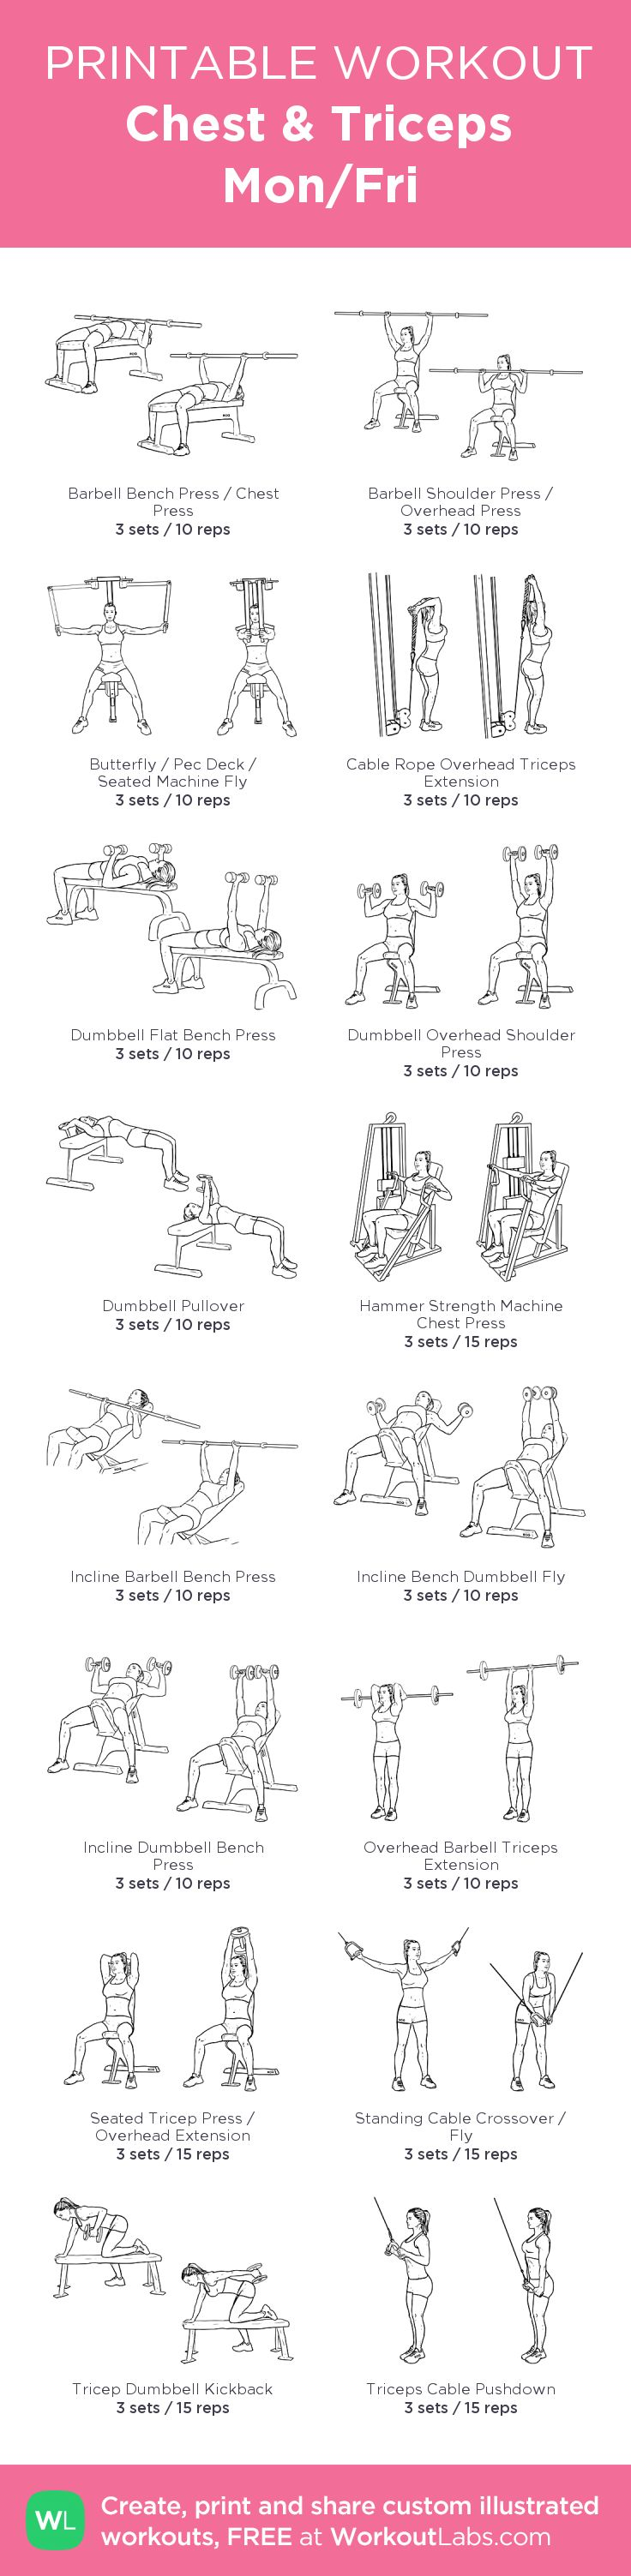 Chest & Triceps Mon/Fri:my visual workout created at WorkoutLabs.com • Click through to customize and download as a FREE PDF! #customworkout